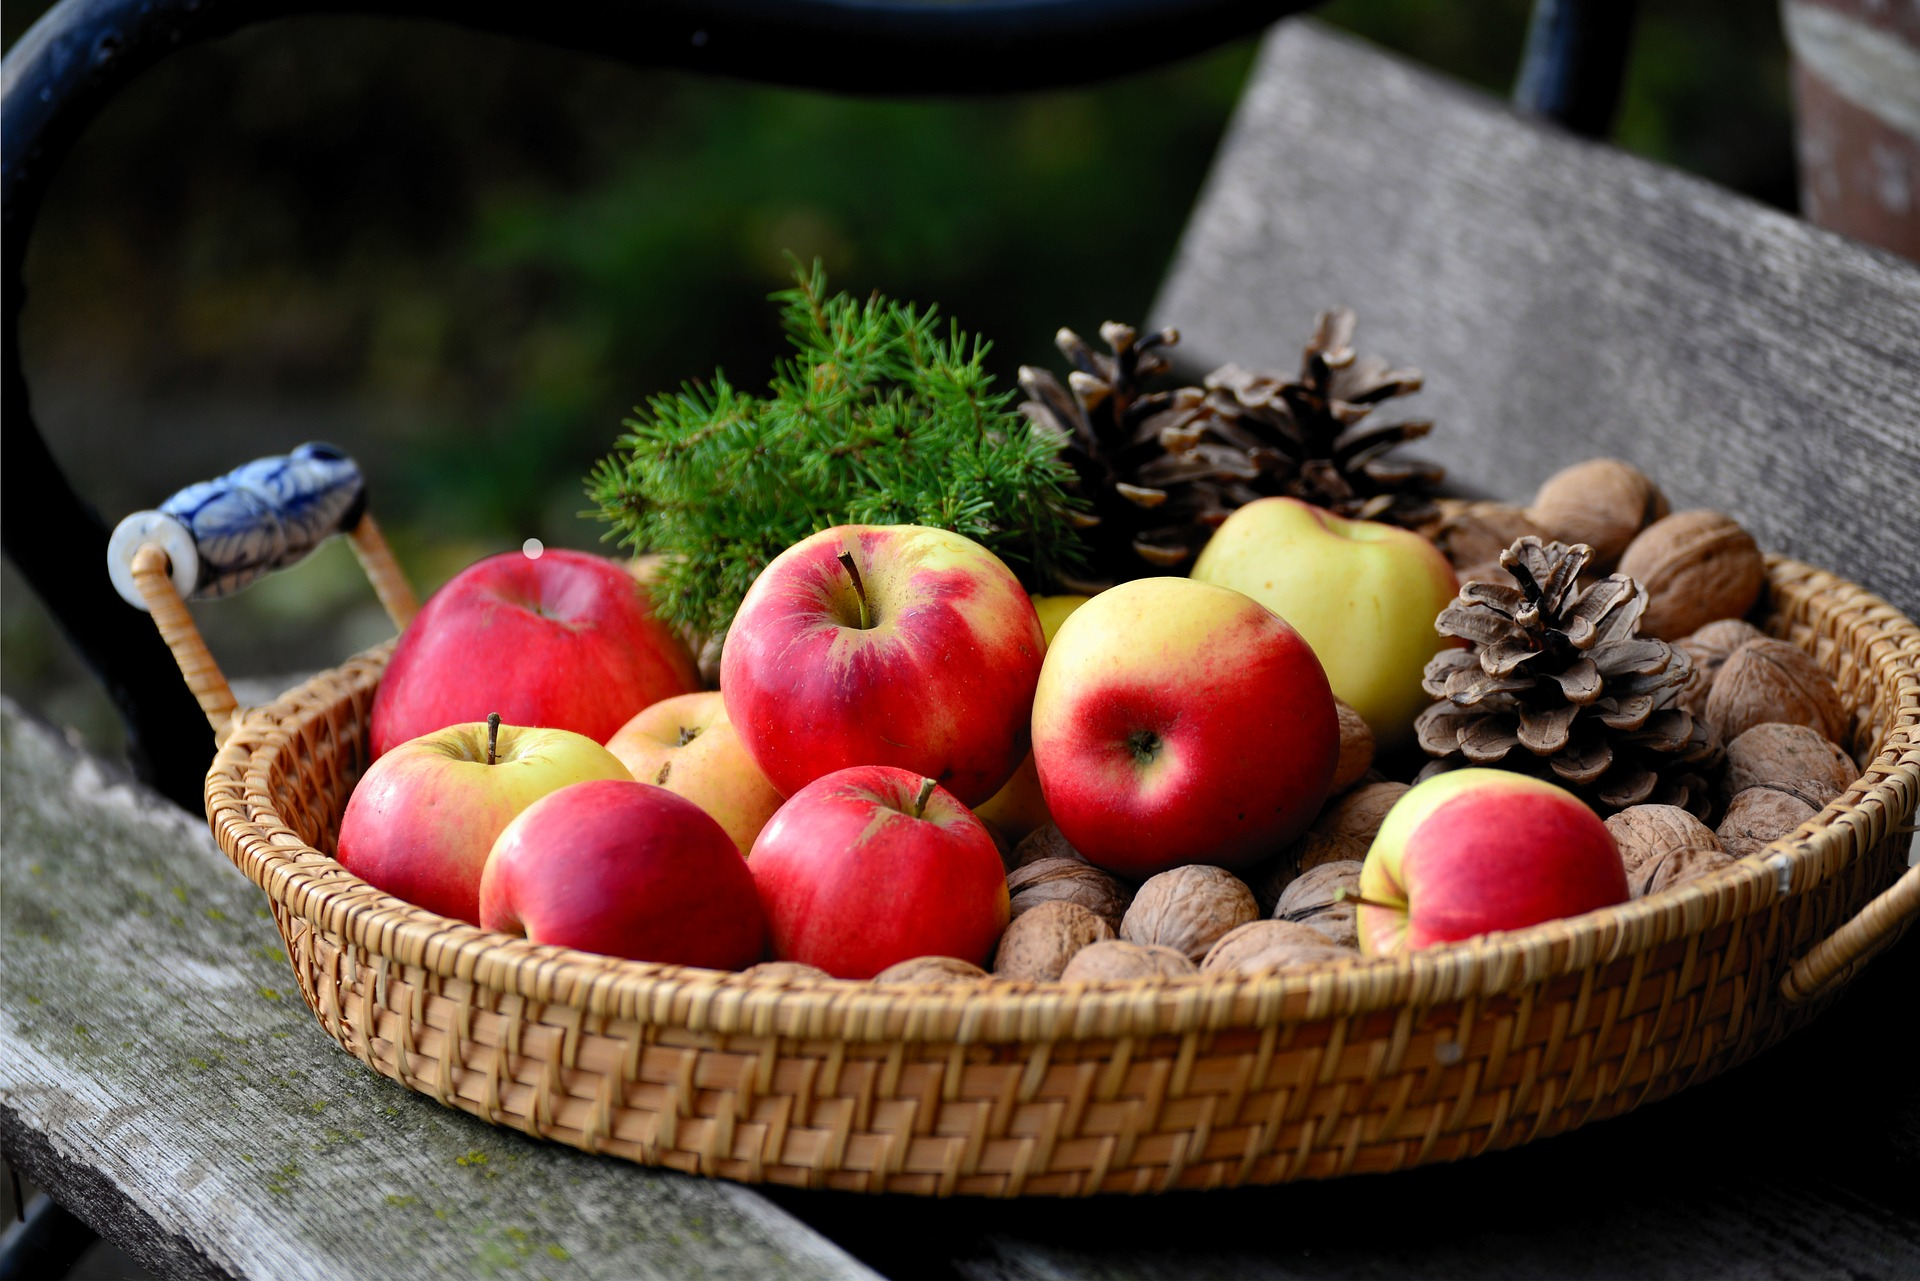 A cane basket full of apples and walnuts